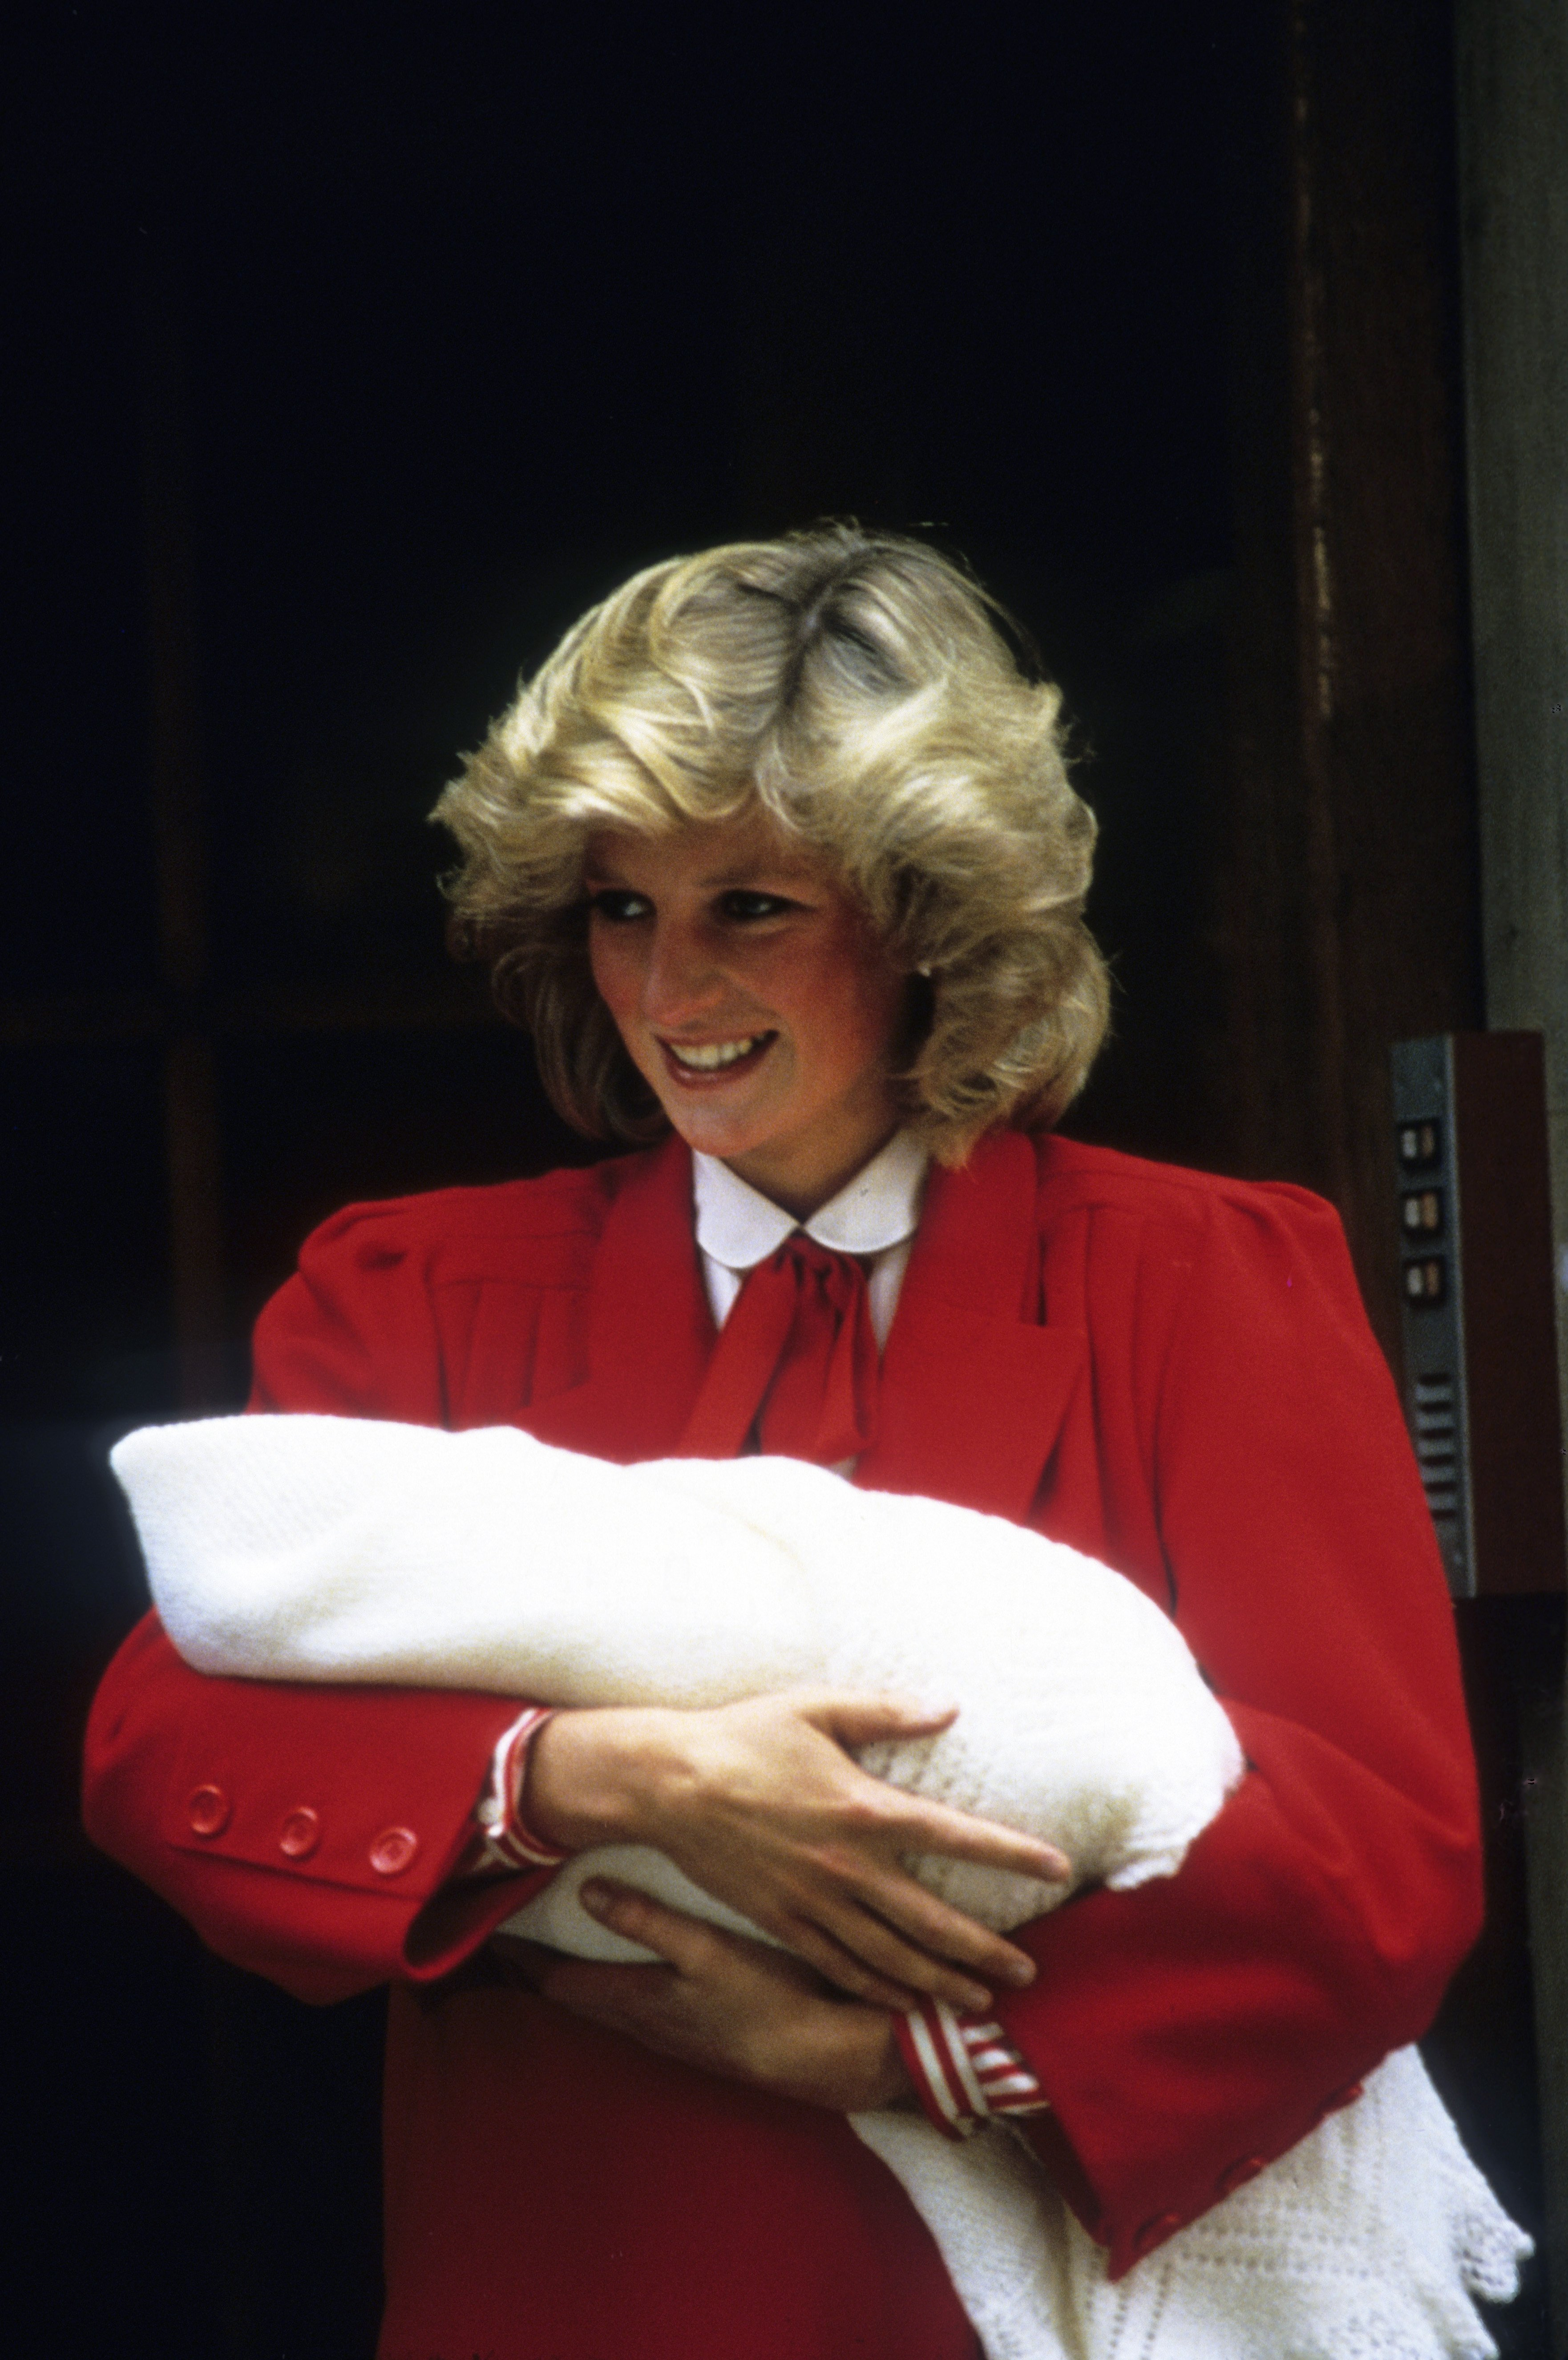 Princess Diana leaves the Lindo Wing of St. Mary's Hospital following the birth of Prince Harry on September 16, 1984 in London, England. | Source: Getty Images